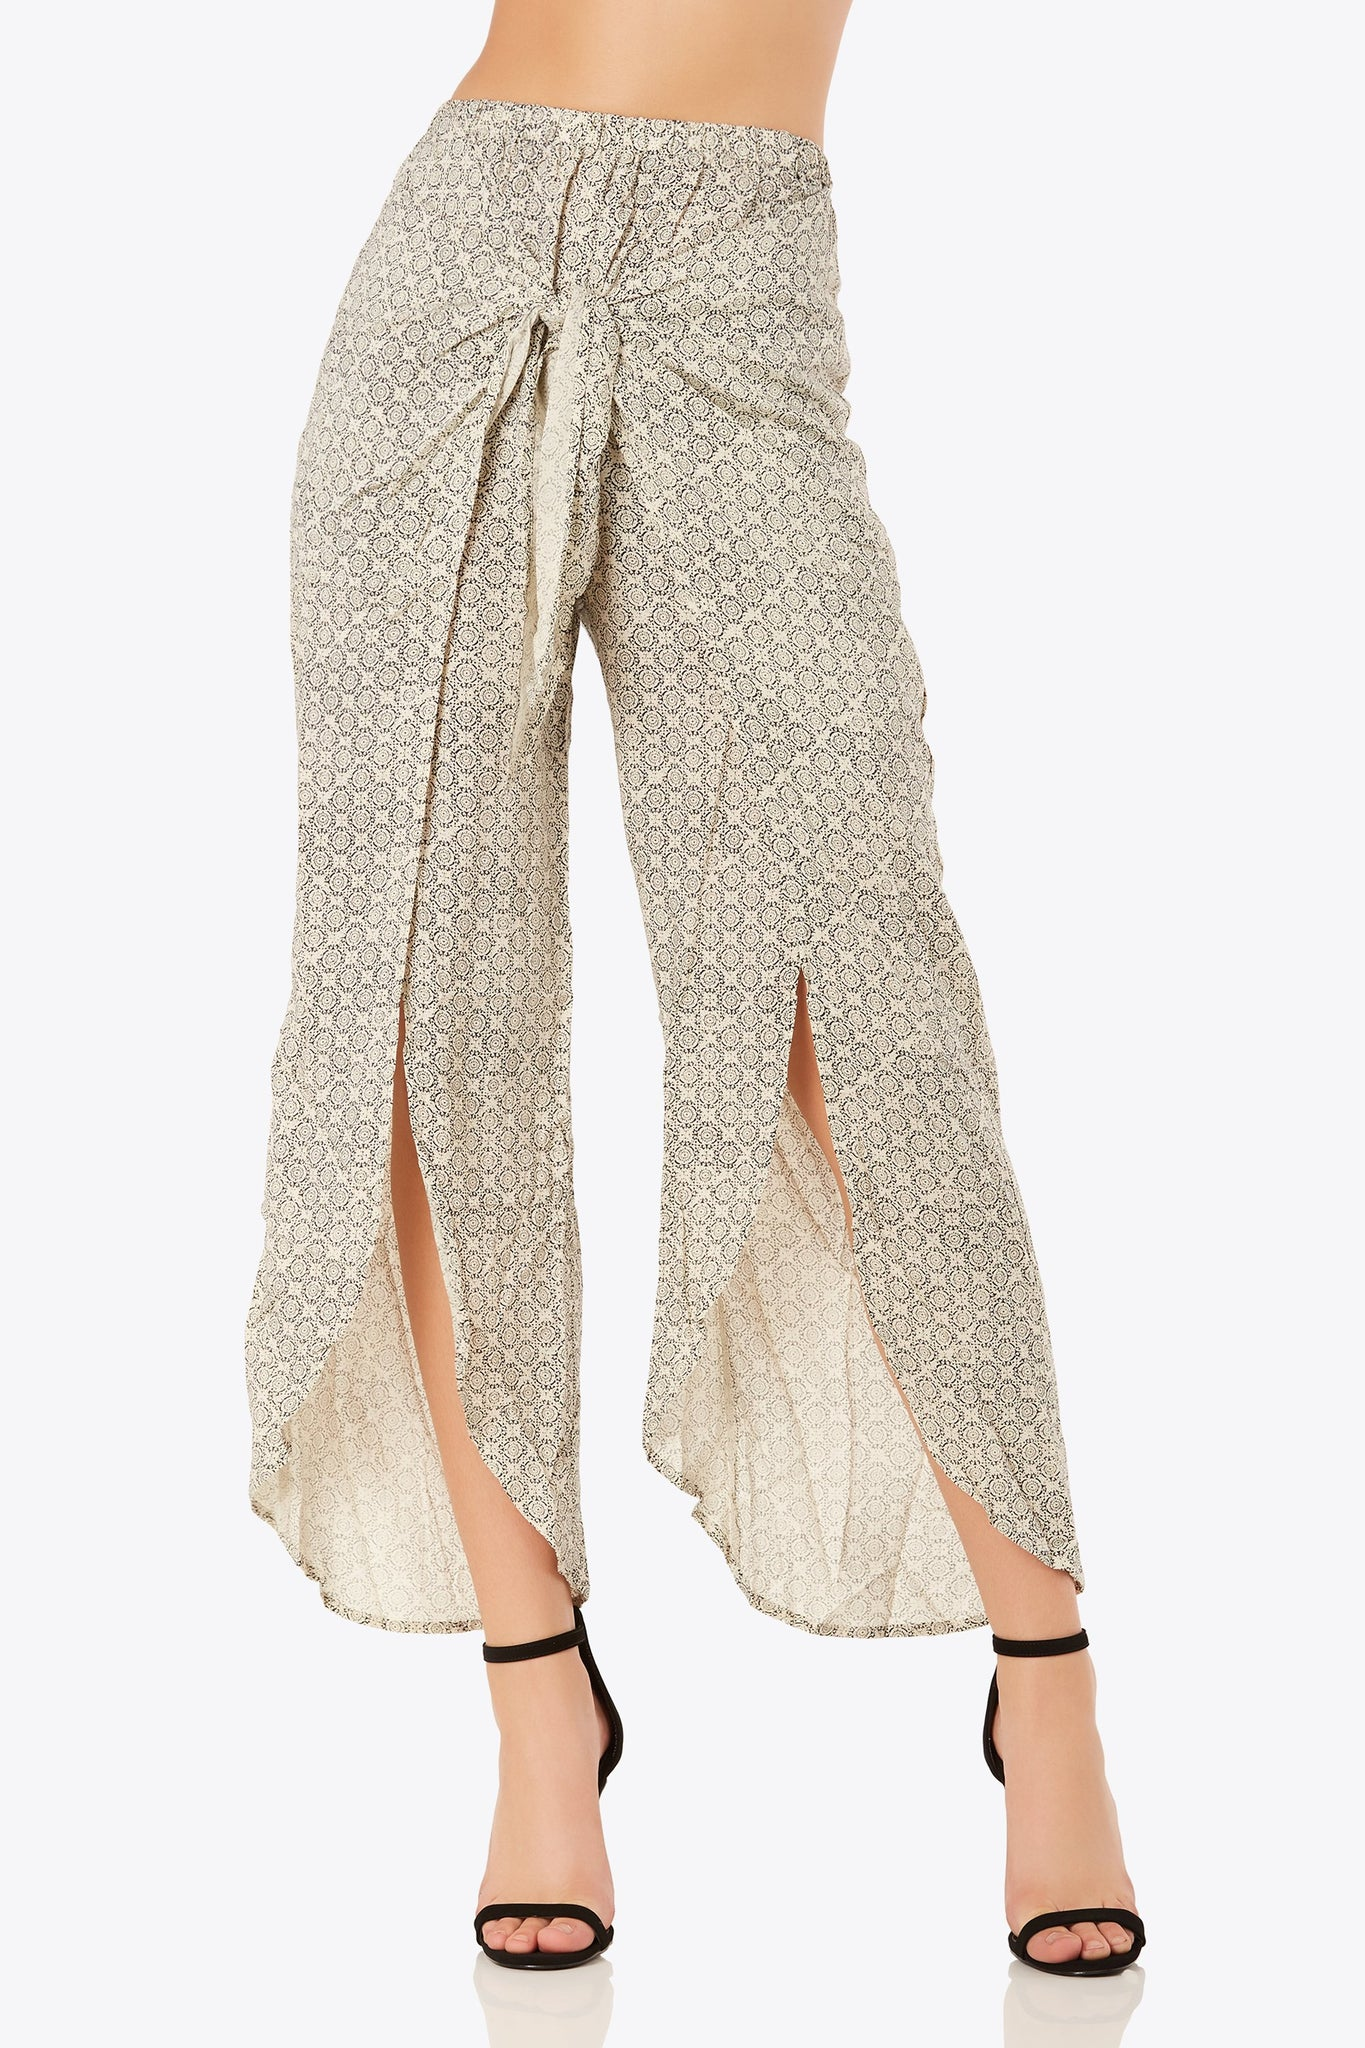 Flowy high rise printed pants with chic front wrap design. Stretchy elasticized waistband with bold front slit detailing.